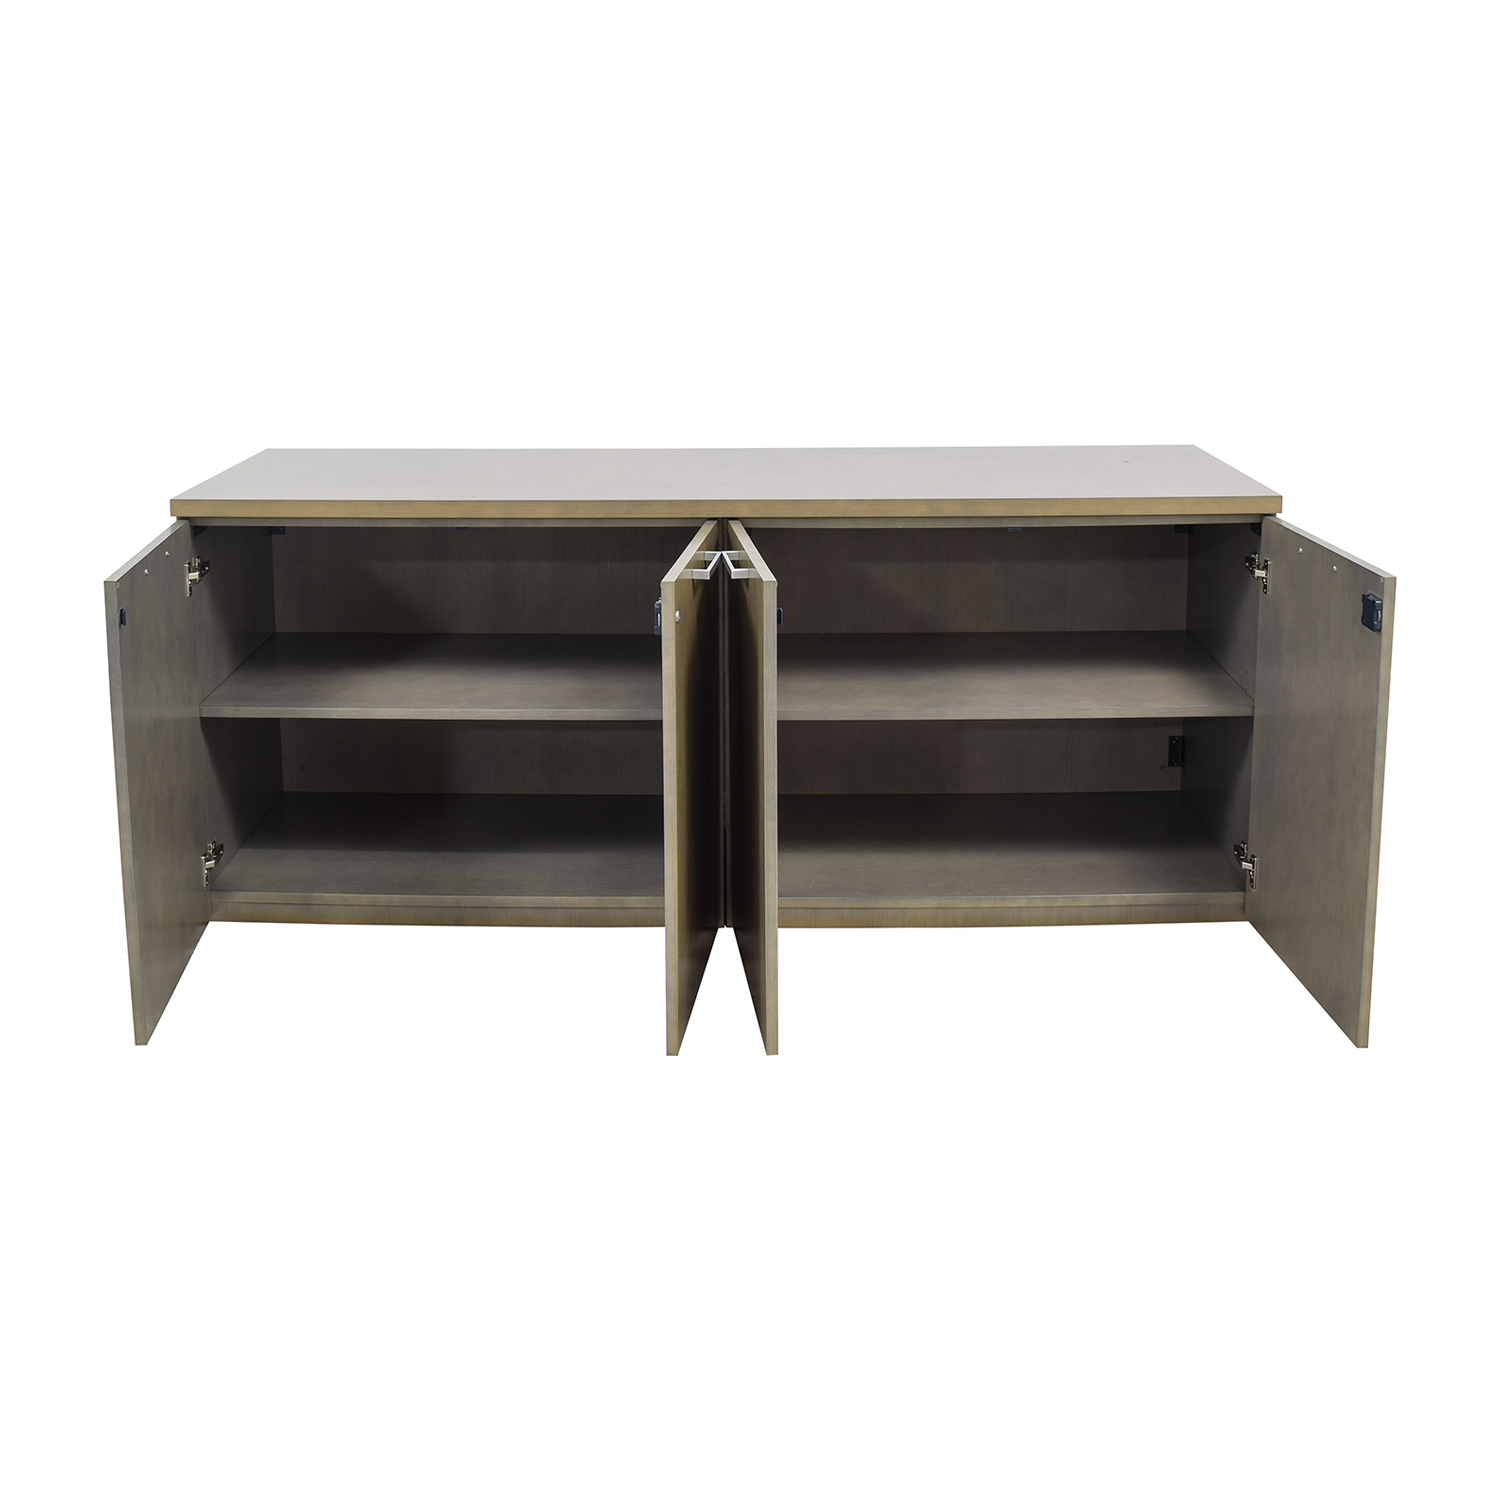 Office Furniture Heaven Office Furniture Heaven Storage Credenza second hand